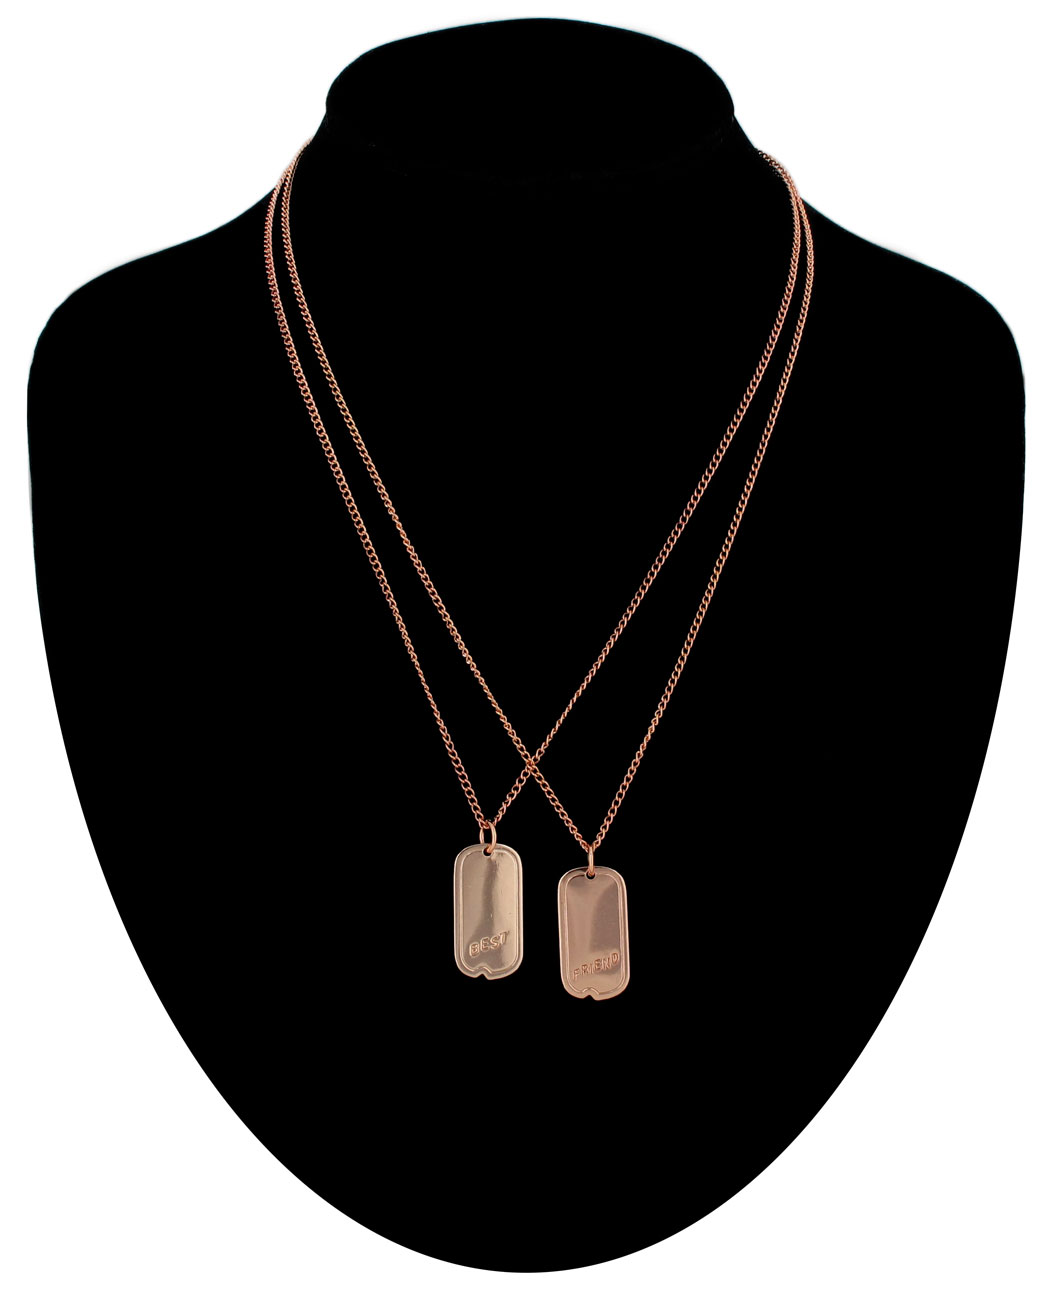 Ky & Co Pendant Bff Necklace Set Friendship Dog Tag Best Friends Rose Gold Tone